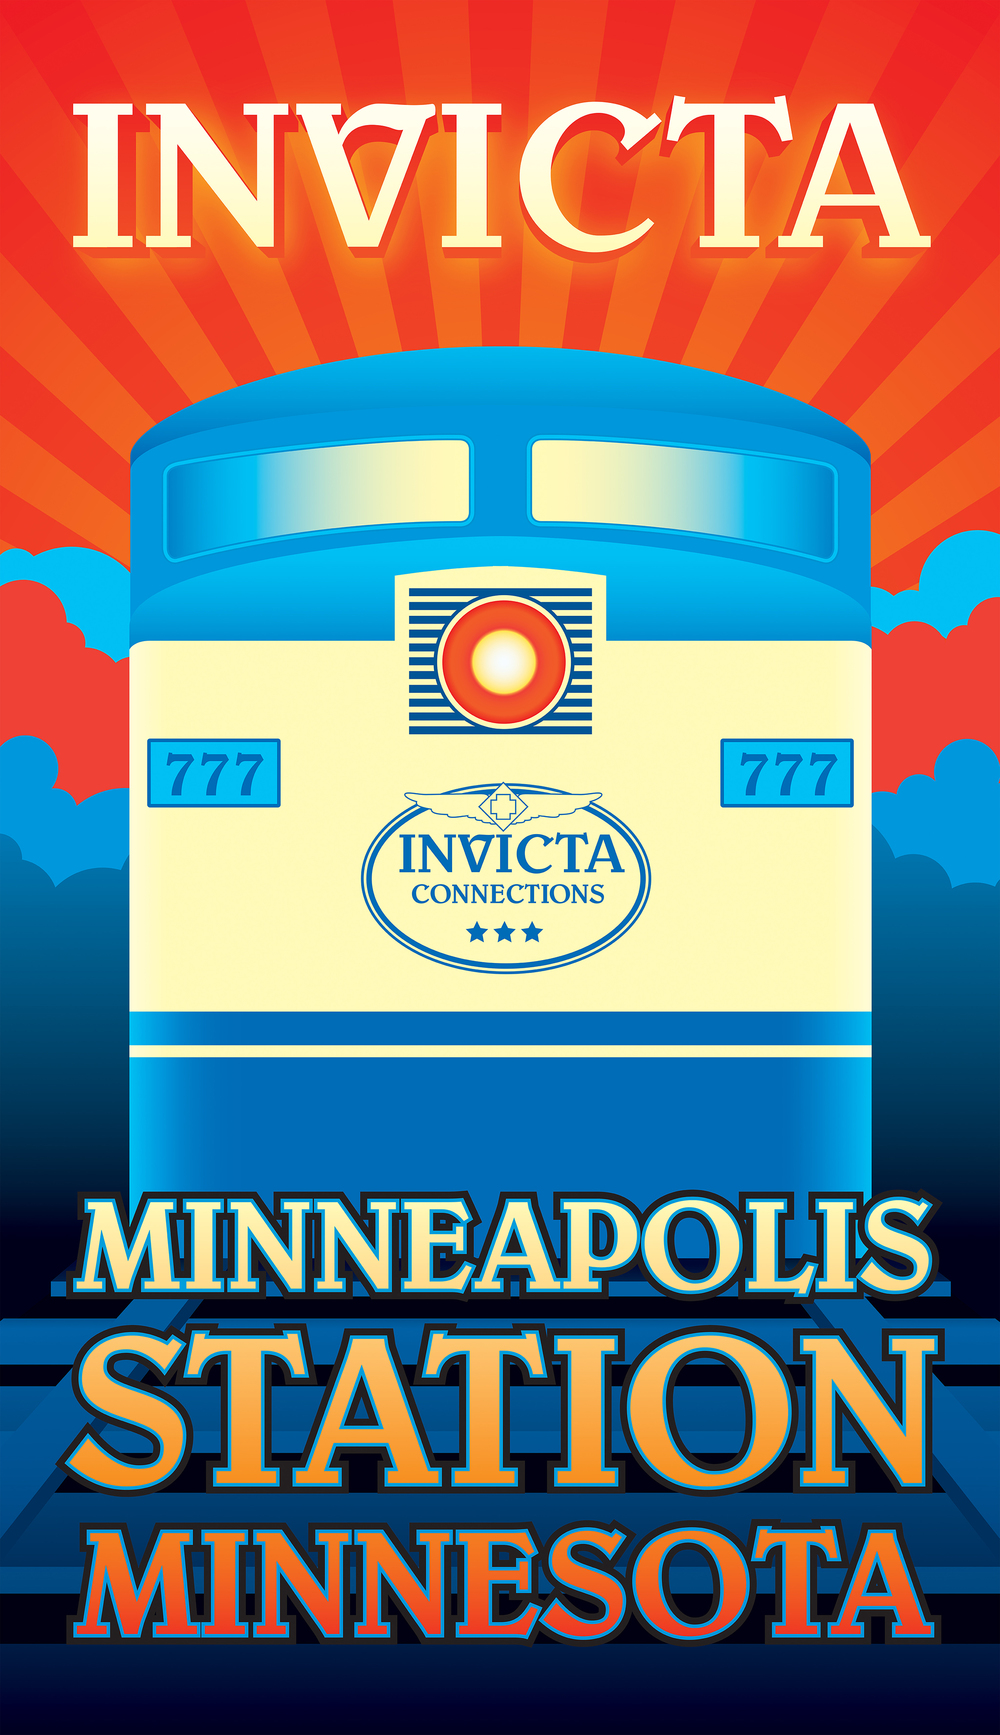 IN_WJ_Poster_Minneapolis_01.jpg